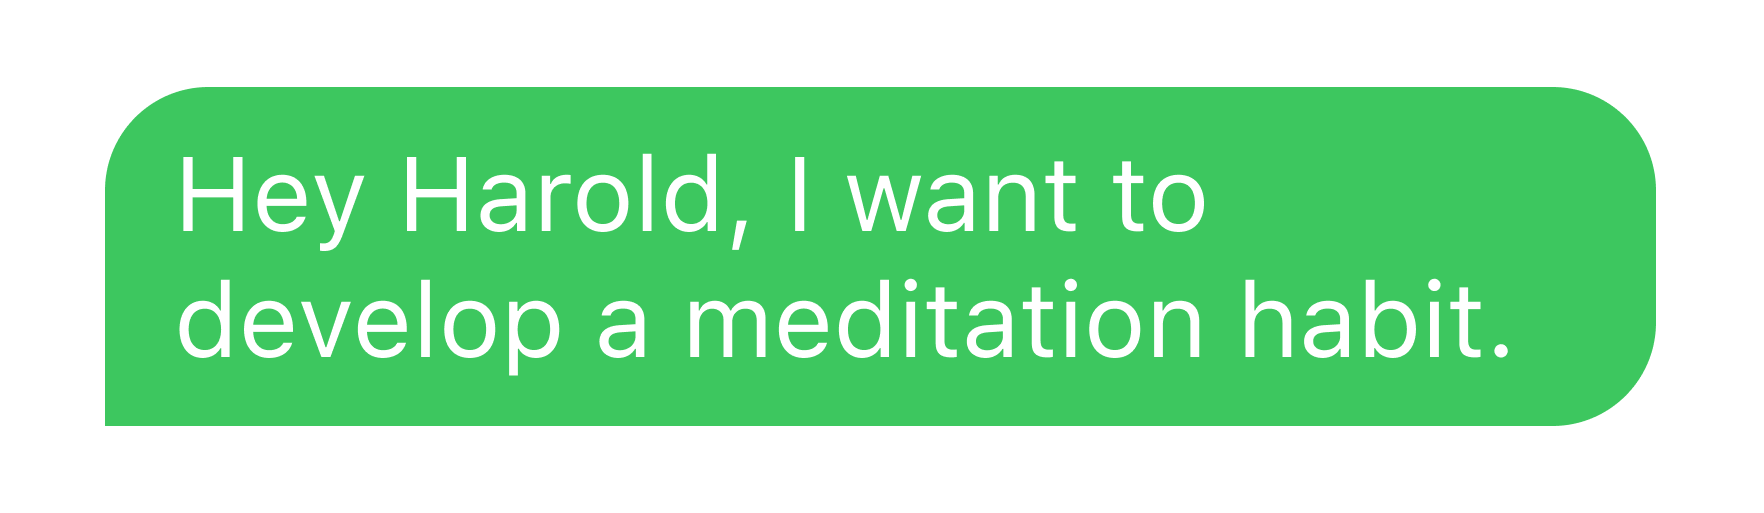 """Image of a sent text message that says """"Hey Harold, I want to develop a meditation habit."""""""